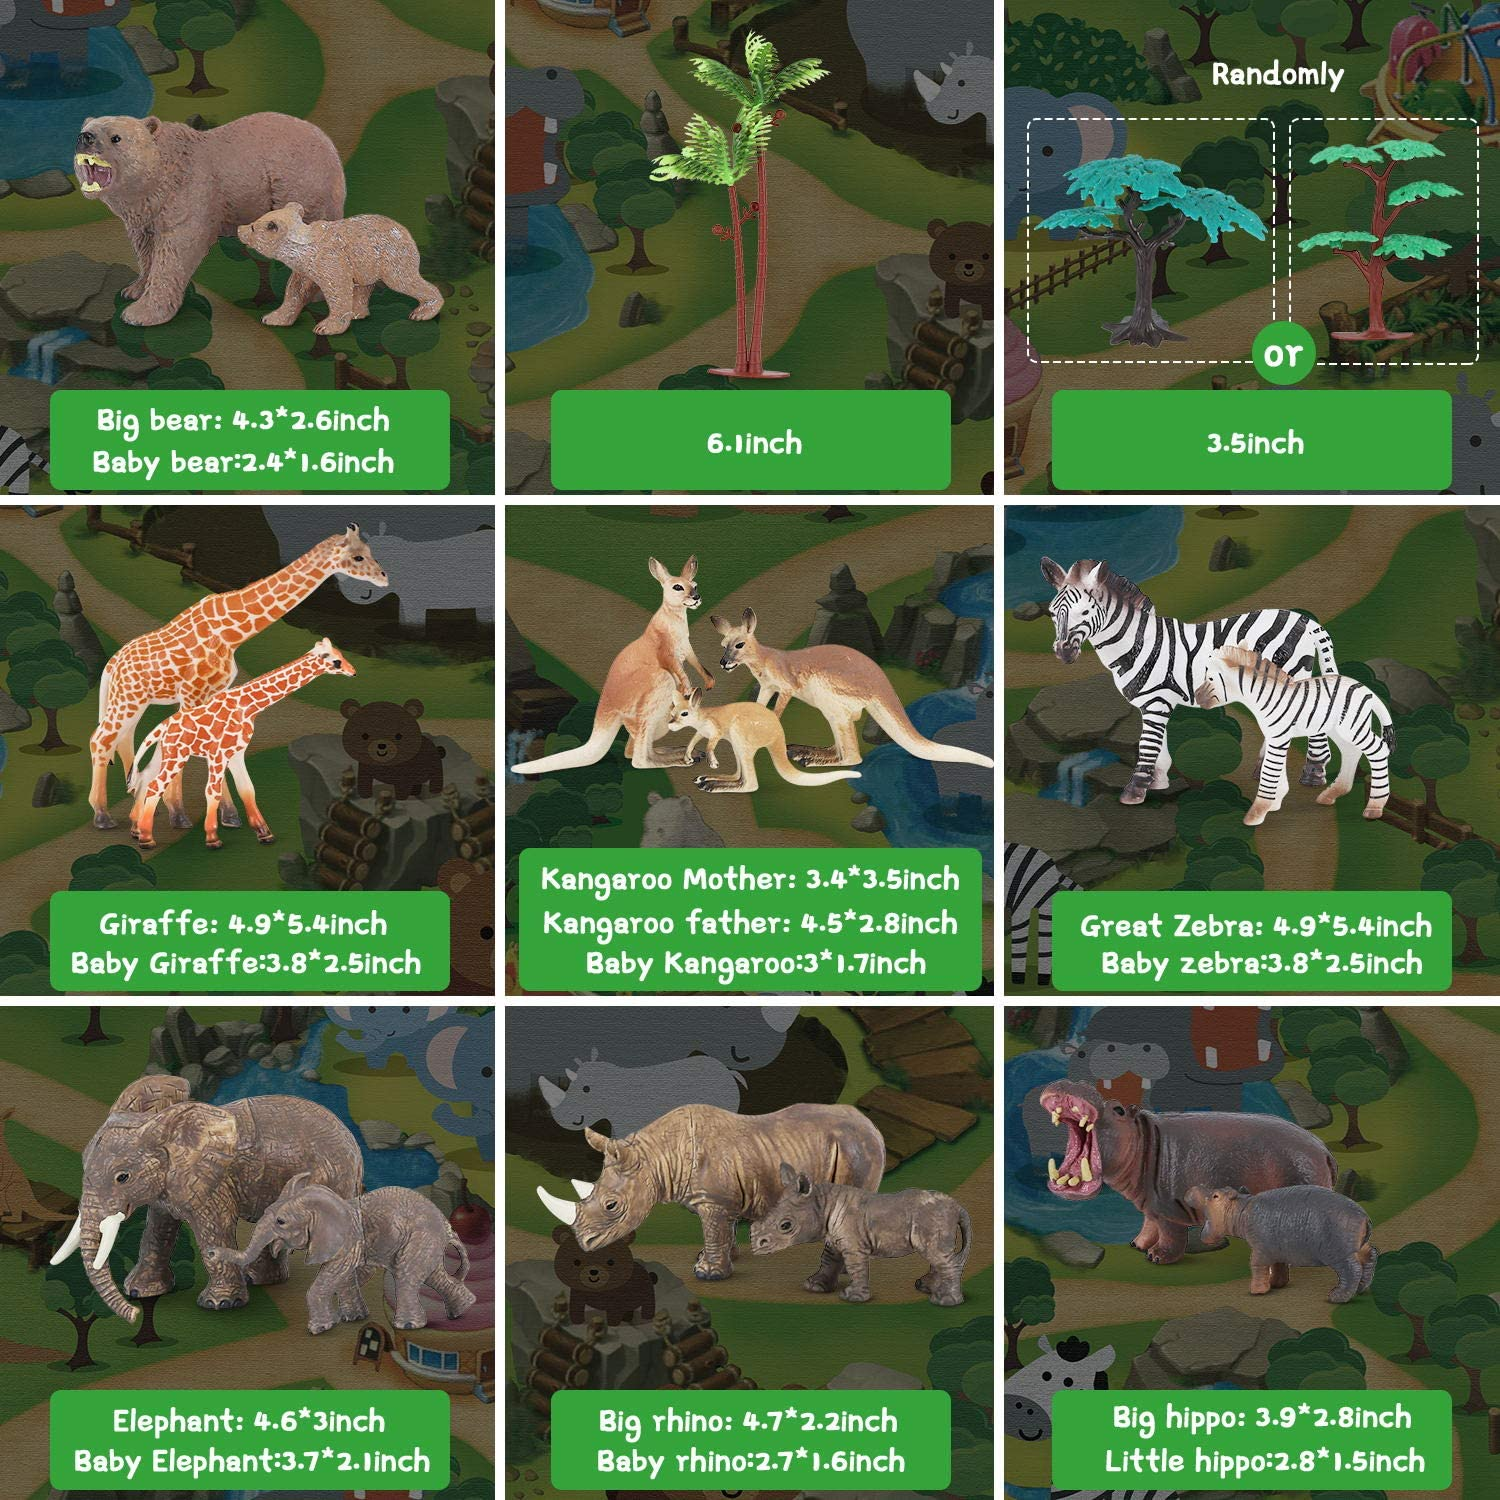 Realistic Jungle Animal Figurines Mom/&Baby Animal Set,Educational and Child Development Toy for Kids Toy Animals for Toddlers Zoo Animals Figures Playset with Activity Play Mat /& Trees Boys /& Girls